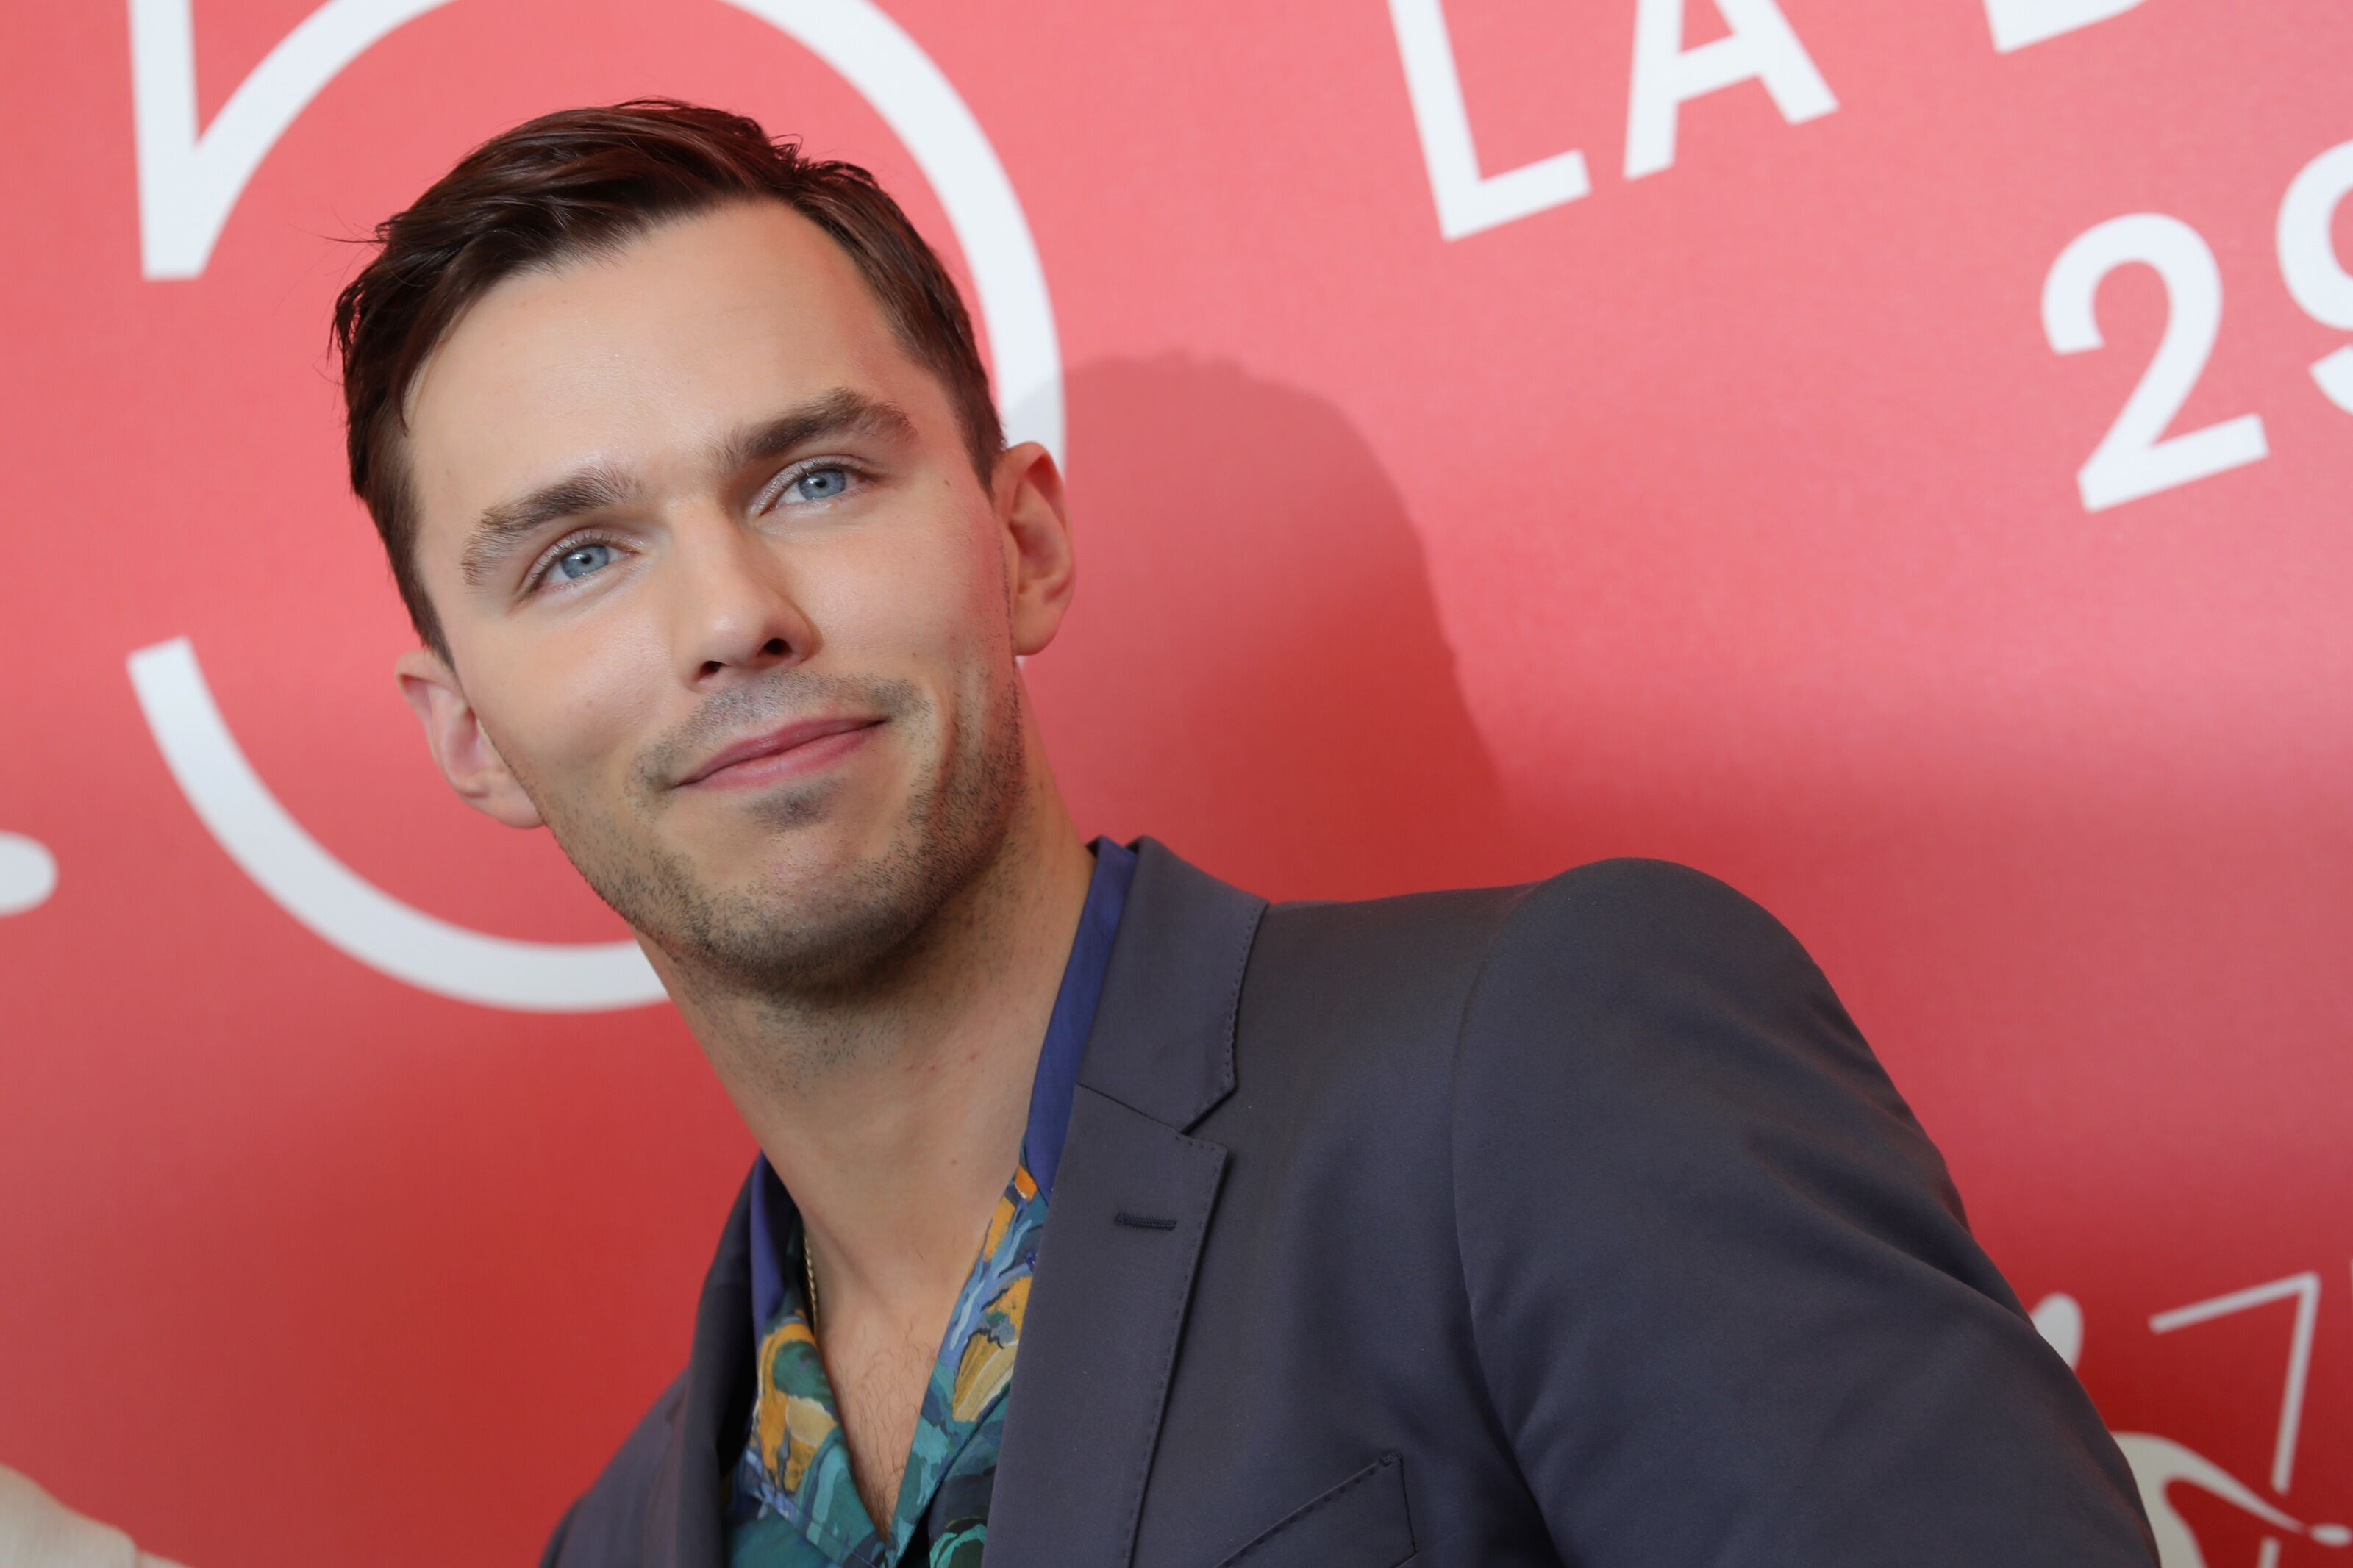 X-Men, Mad Max star Nicholas Hoult to play Lord of the Rings author J.R.R. Tolkien in biopic